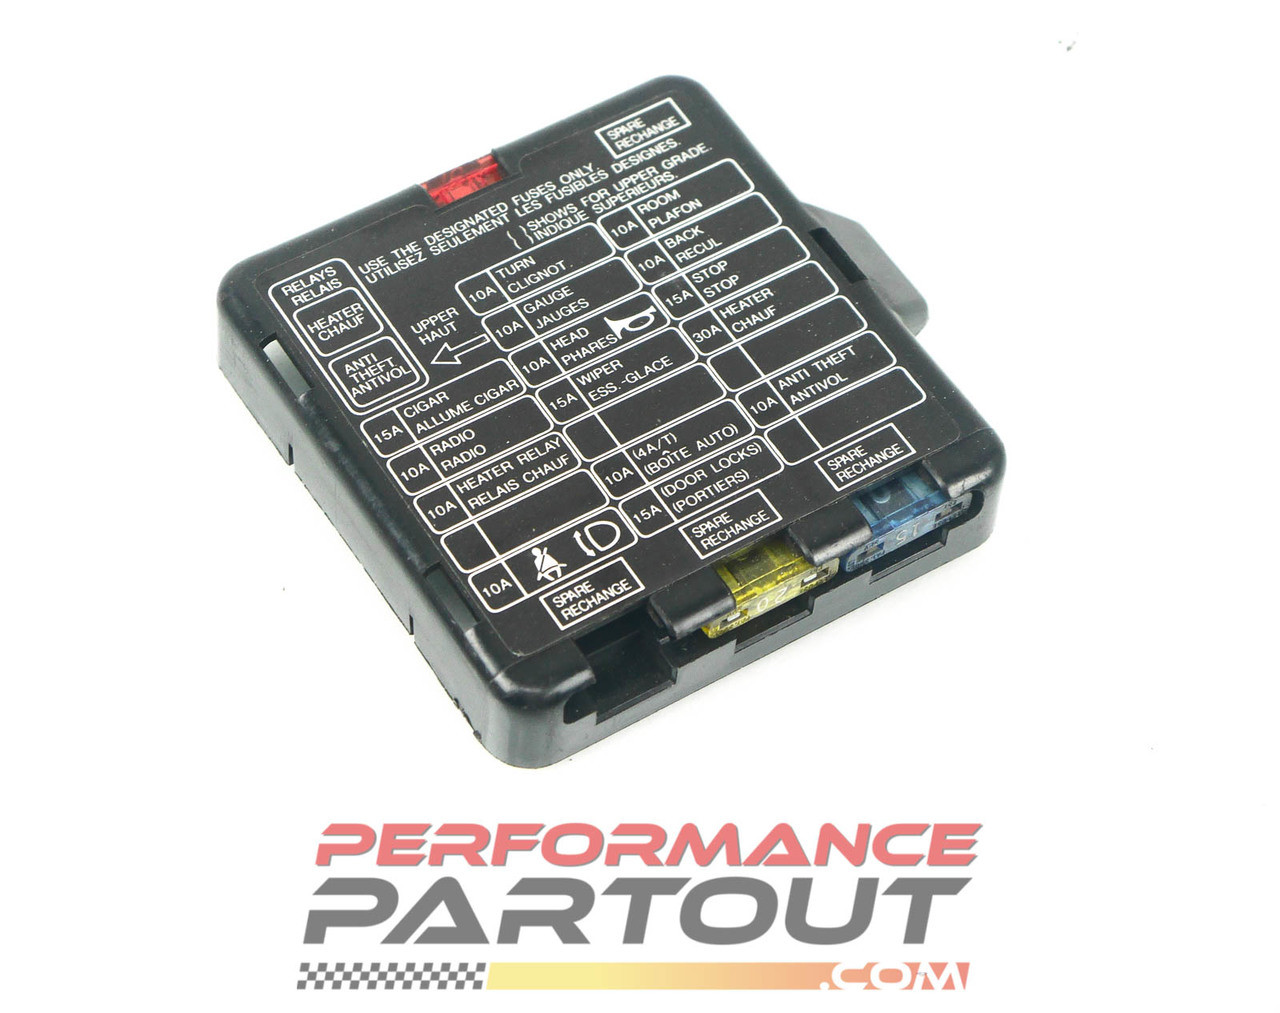 small resolution of fuse box cover interior 90 94 dsm performance partout this is a fuse box cover from 90